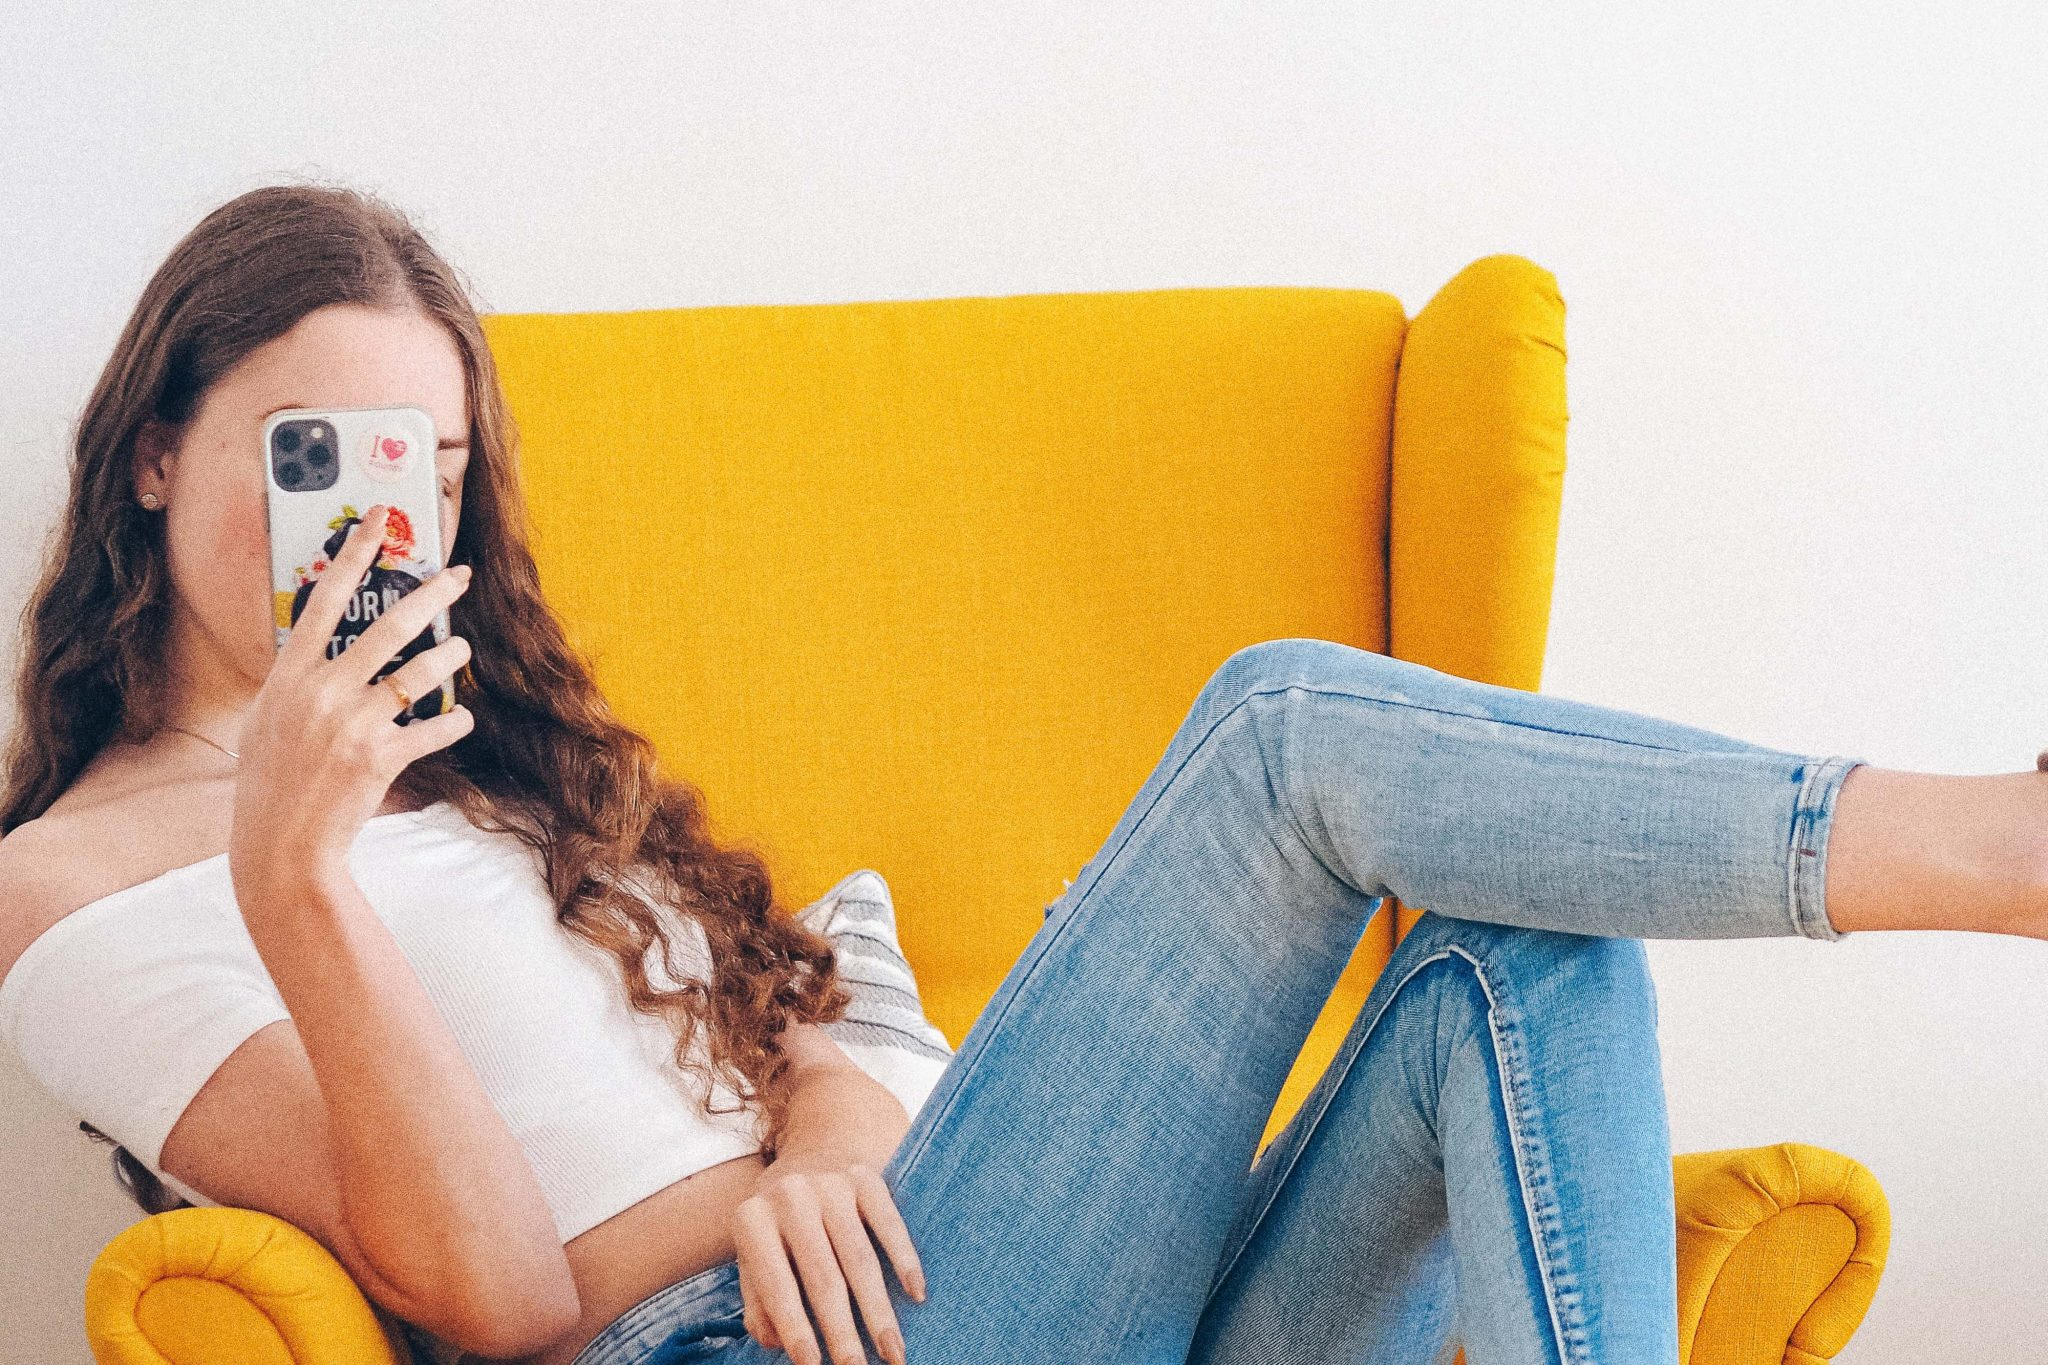 Gen Z aged female sitting on yellow armchair looking at smartphone